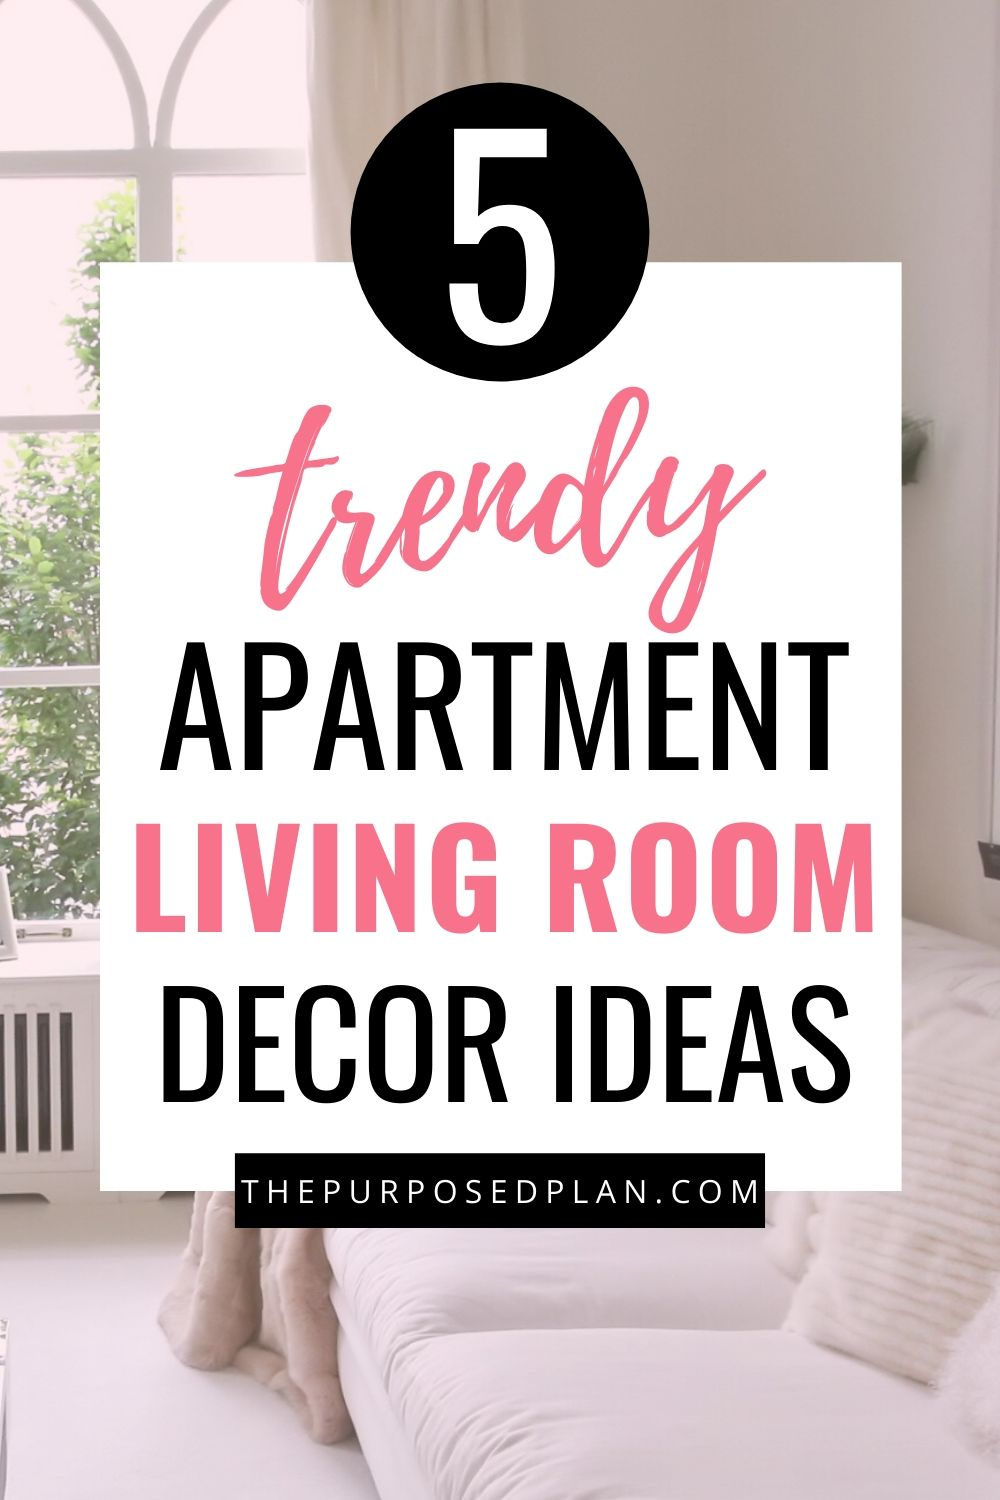 APARTMENT LIVING ROOM DECOR IDEAS TO TRY